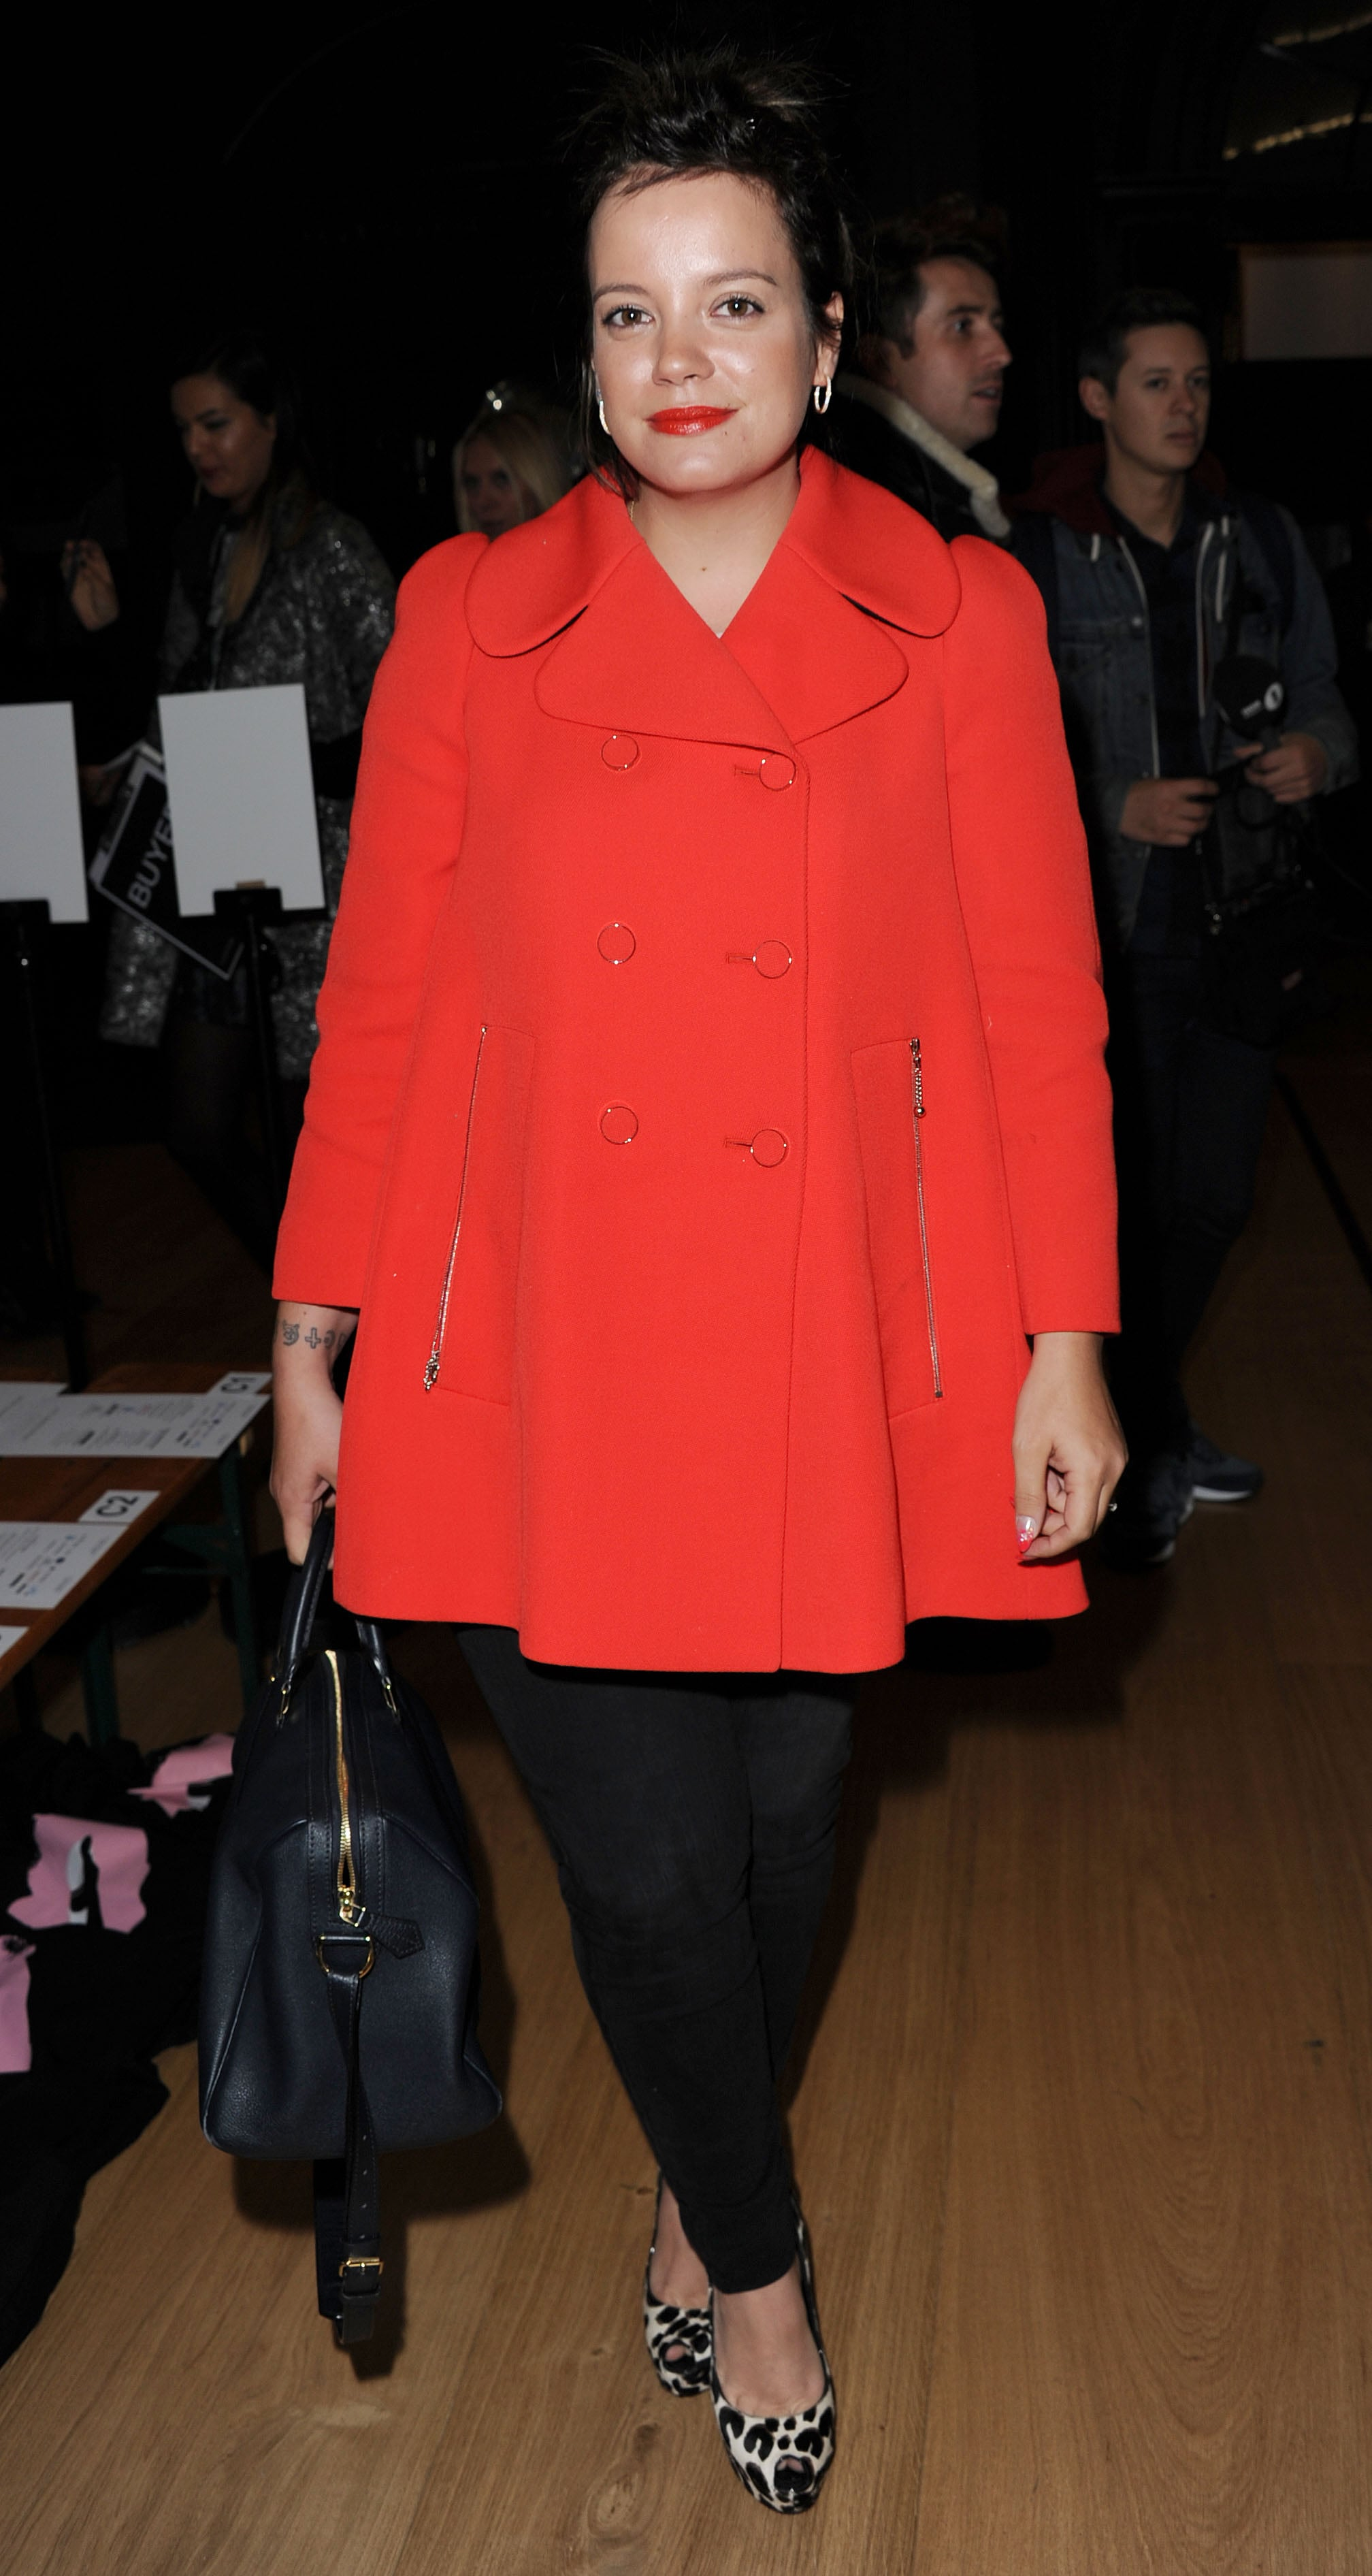 Lily Allen brightened up the front-row scene at the Giles show in a bold red coat and leopard pumps.